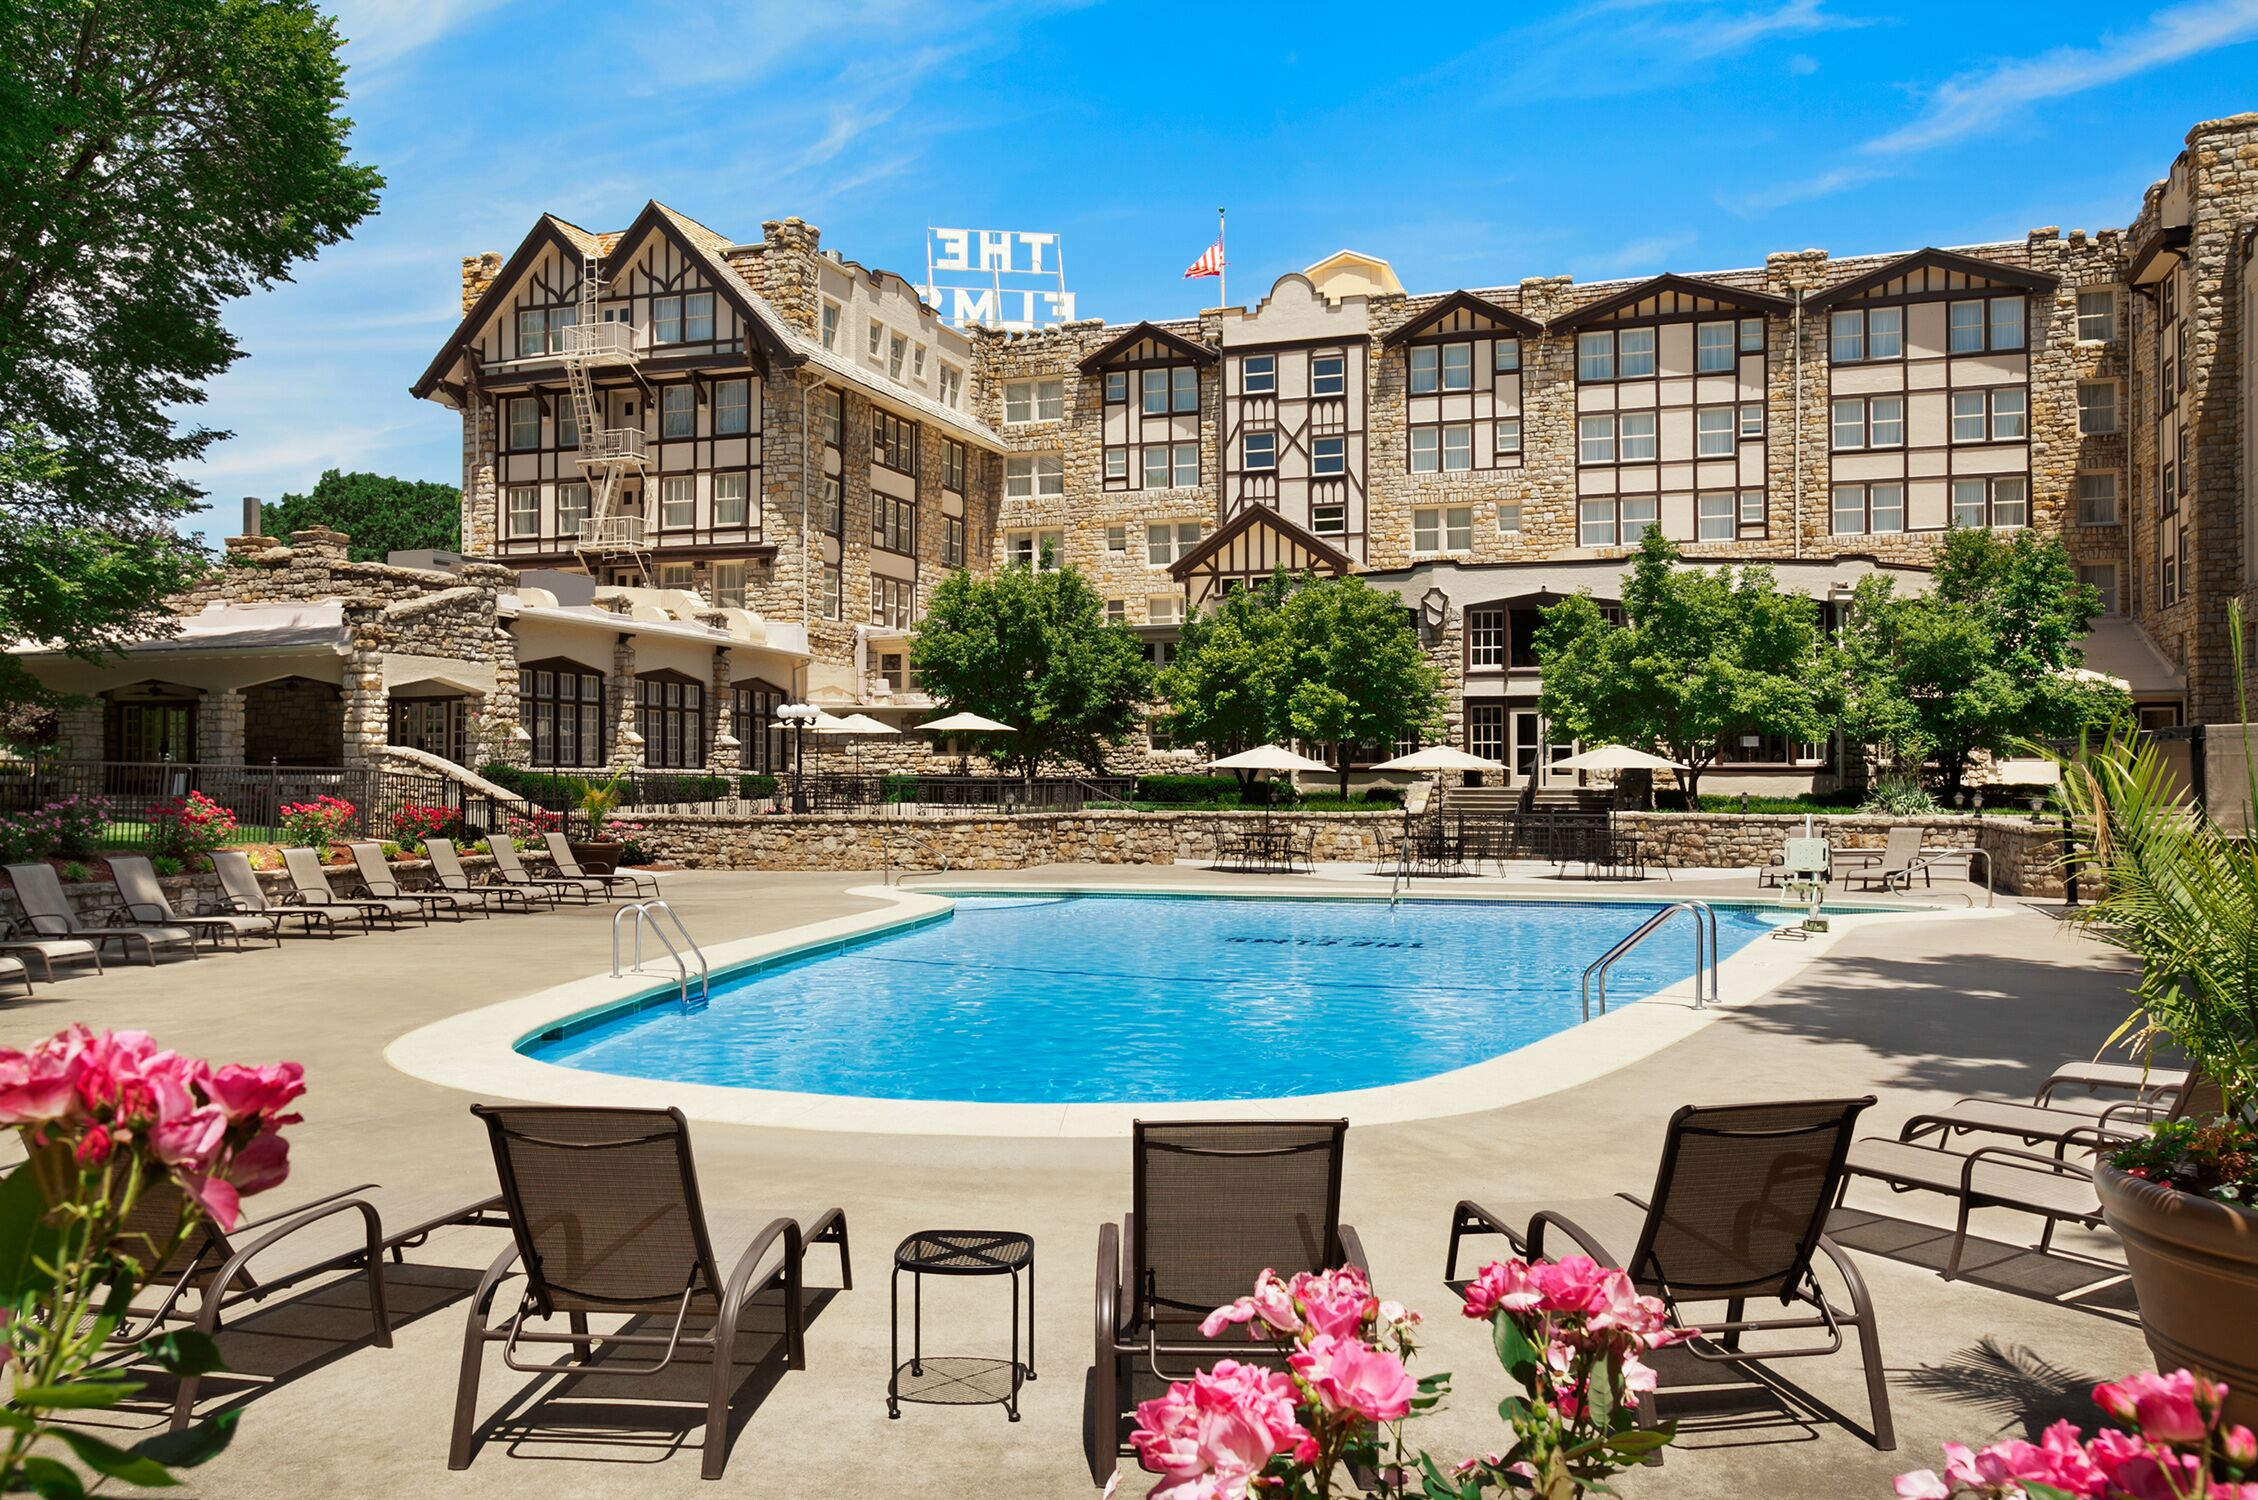 The Elms Hotel & Spa, Excelsior Springs, MO Jobs